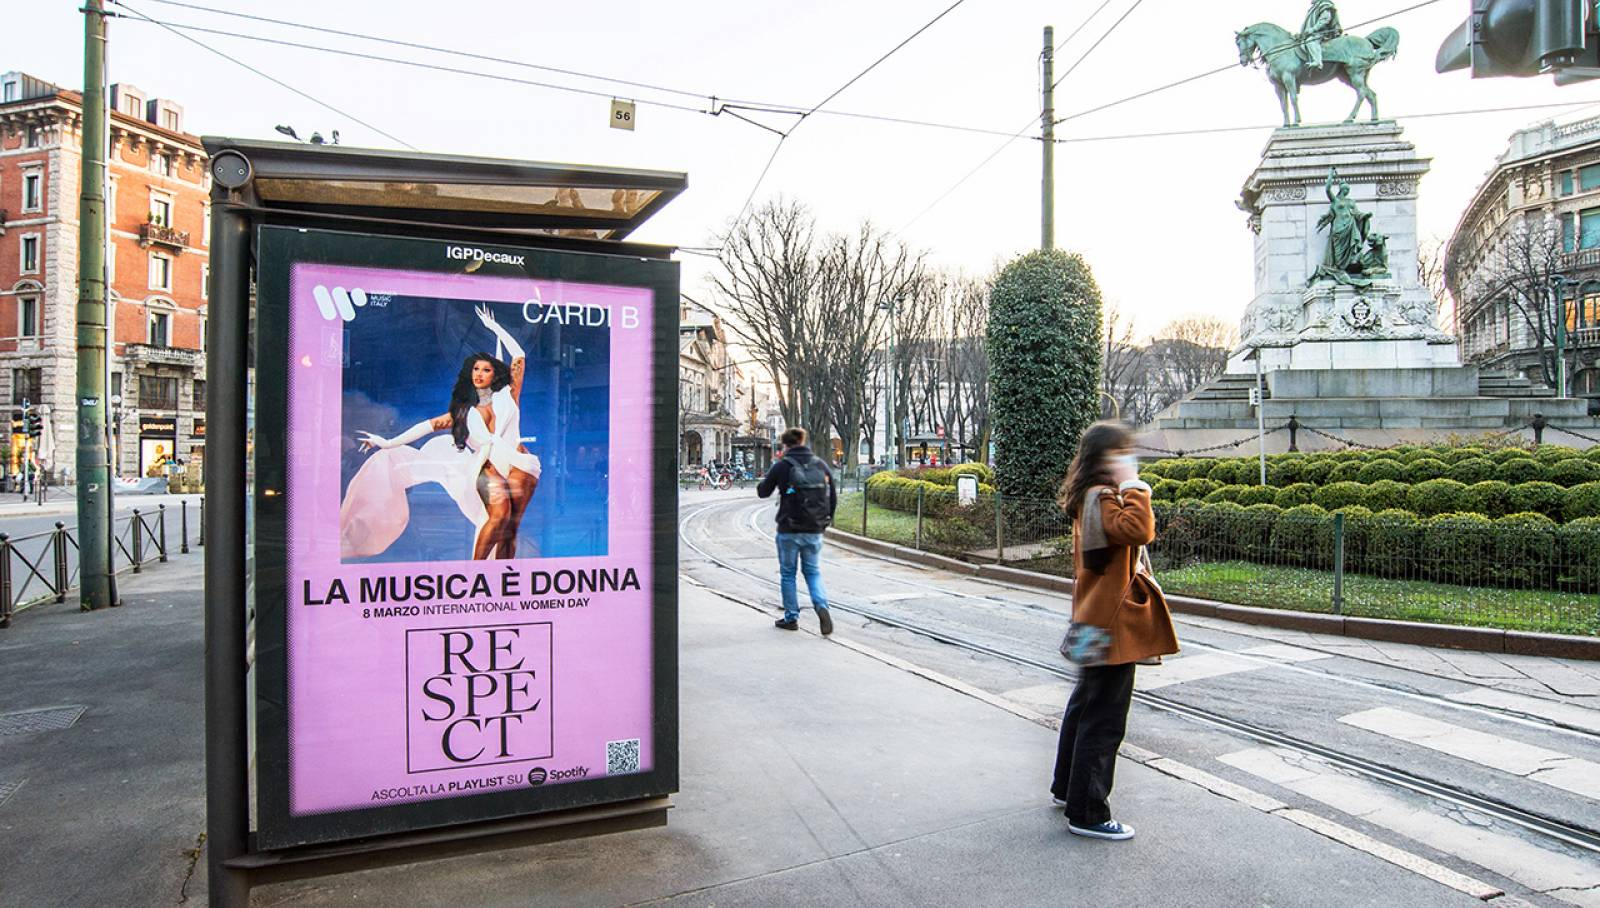 Out OF Home IGPDecaux a Milano pubblicità sulle pensiline per Warner Music Italy